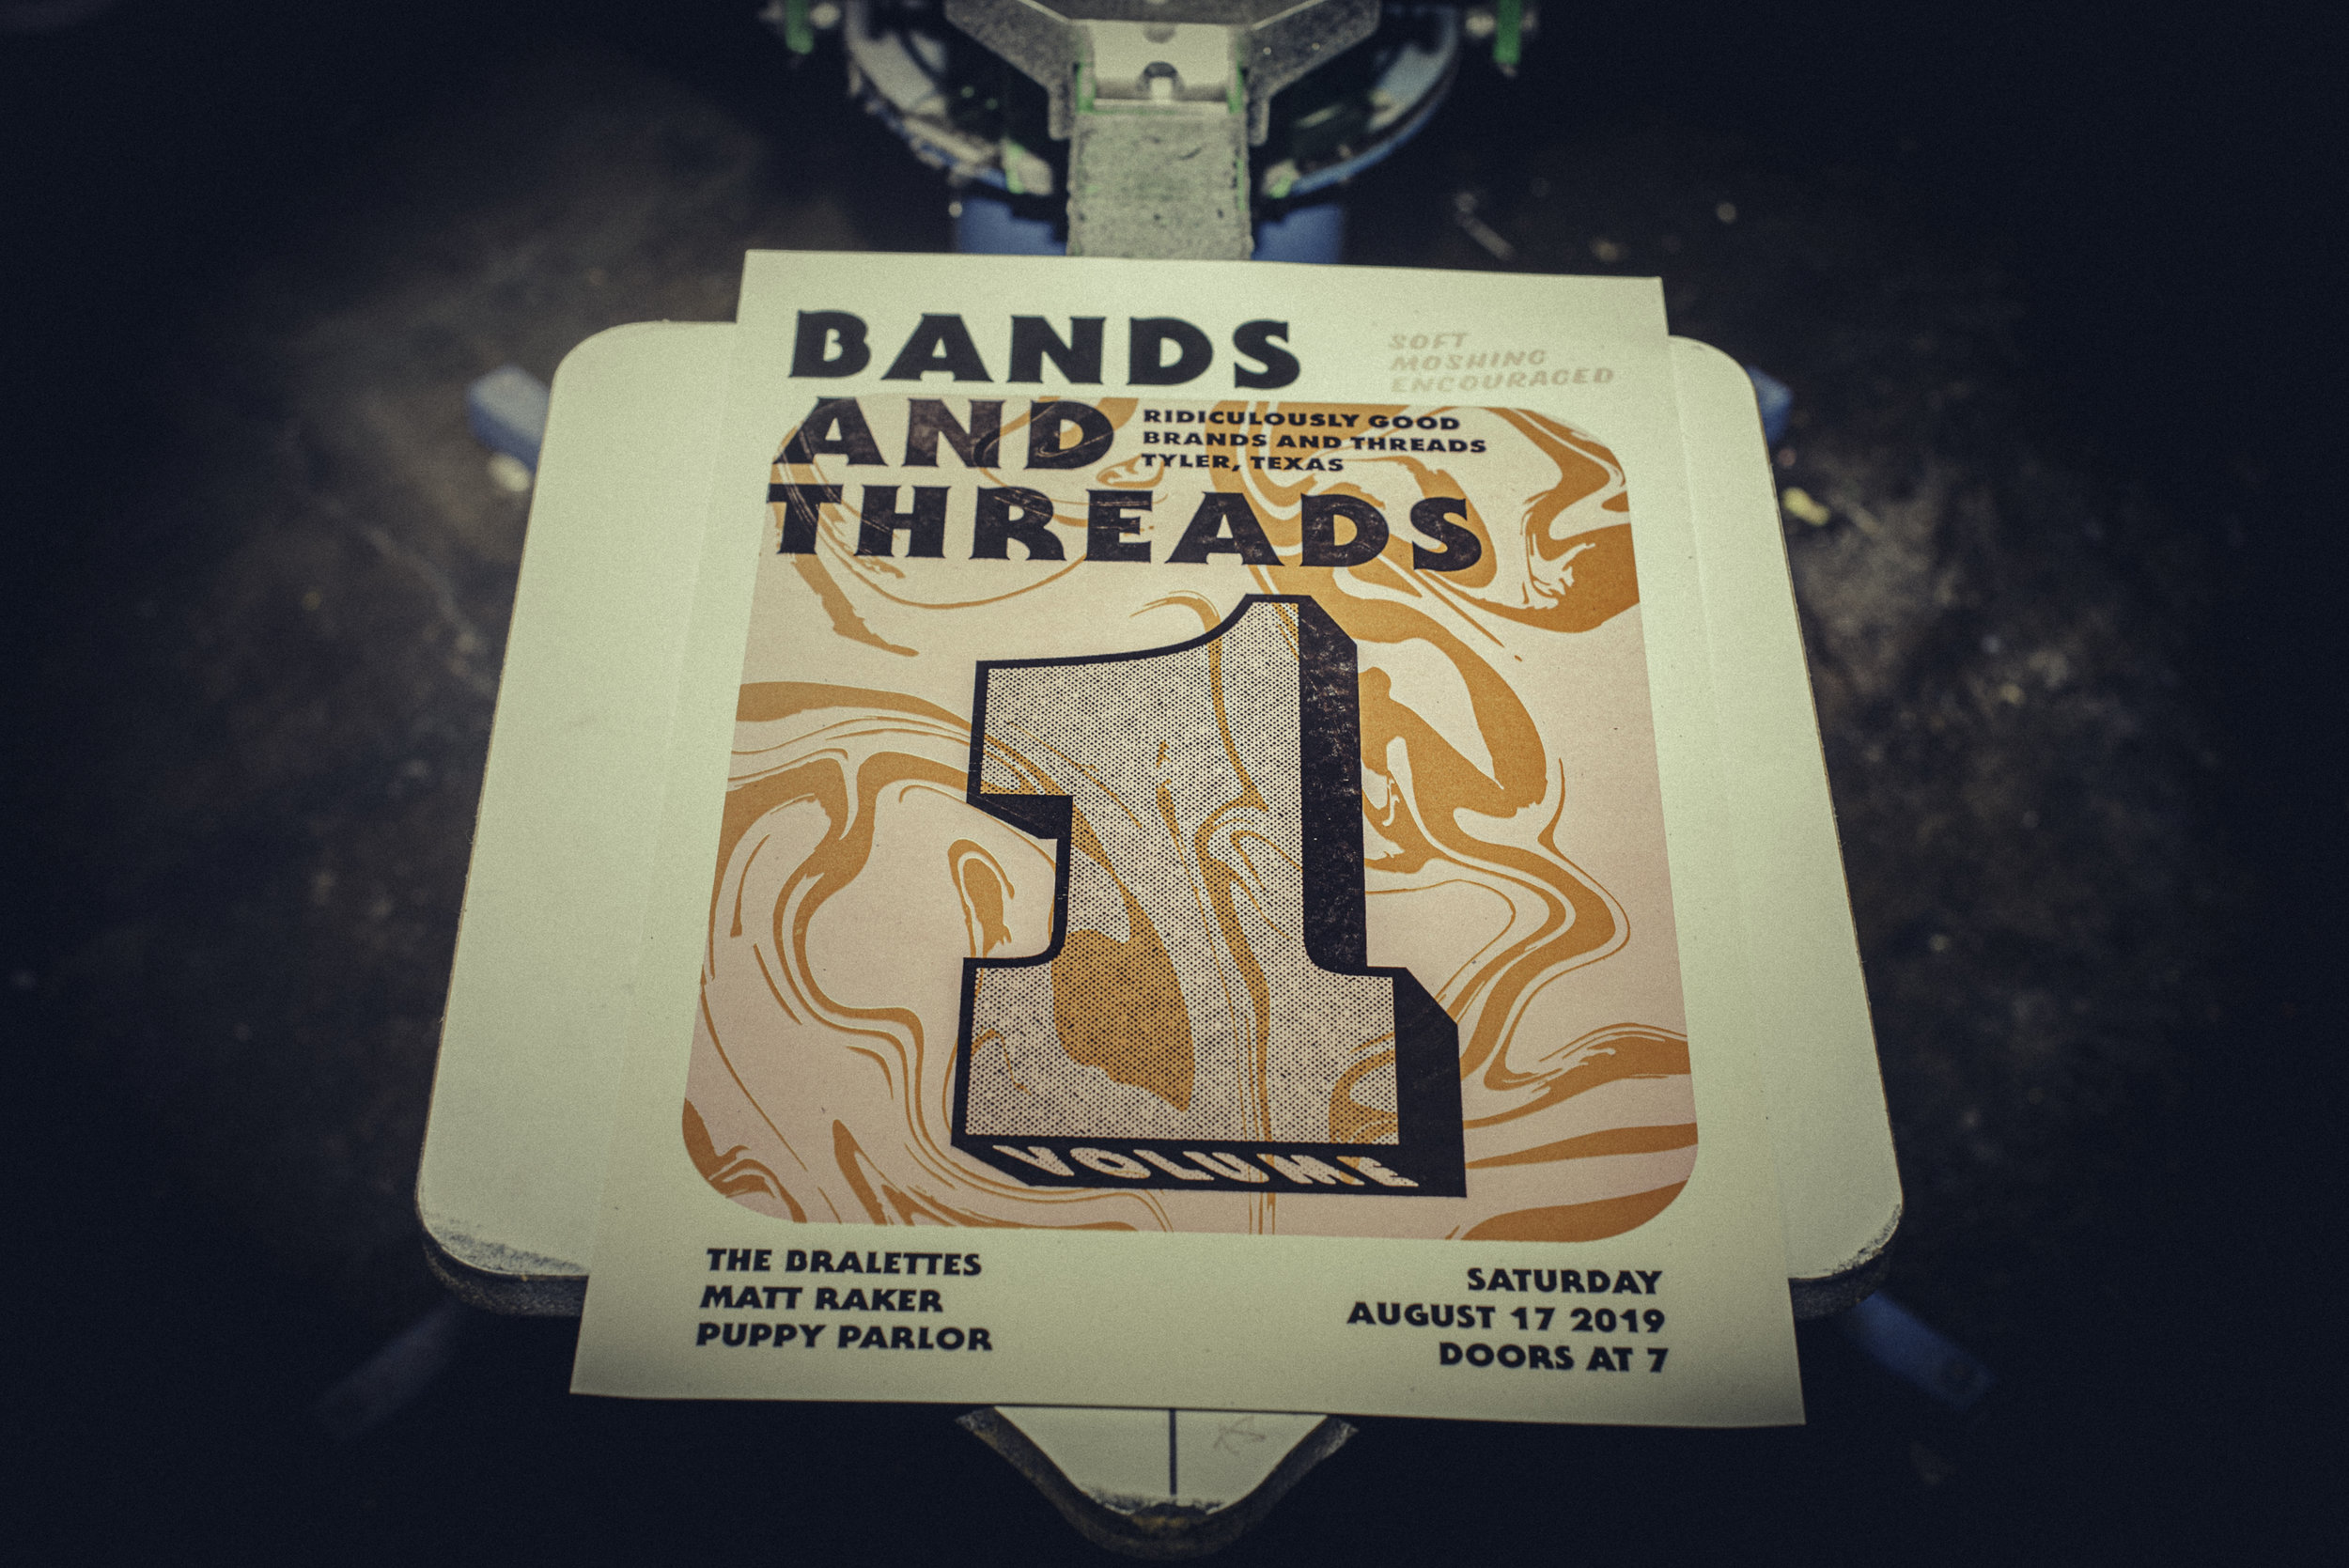 """shots from the 1st ever """"bands and threads"""" hosted by matt raker and brands and threads (posters printed by brands and threads)"""